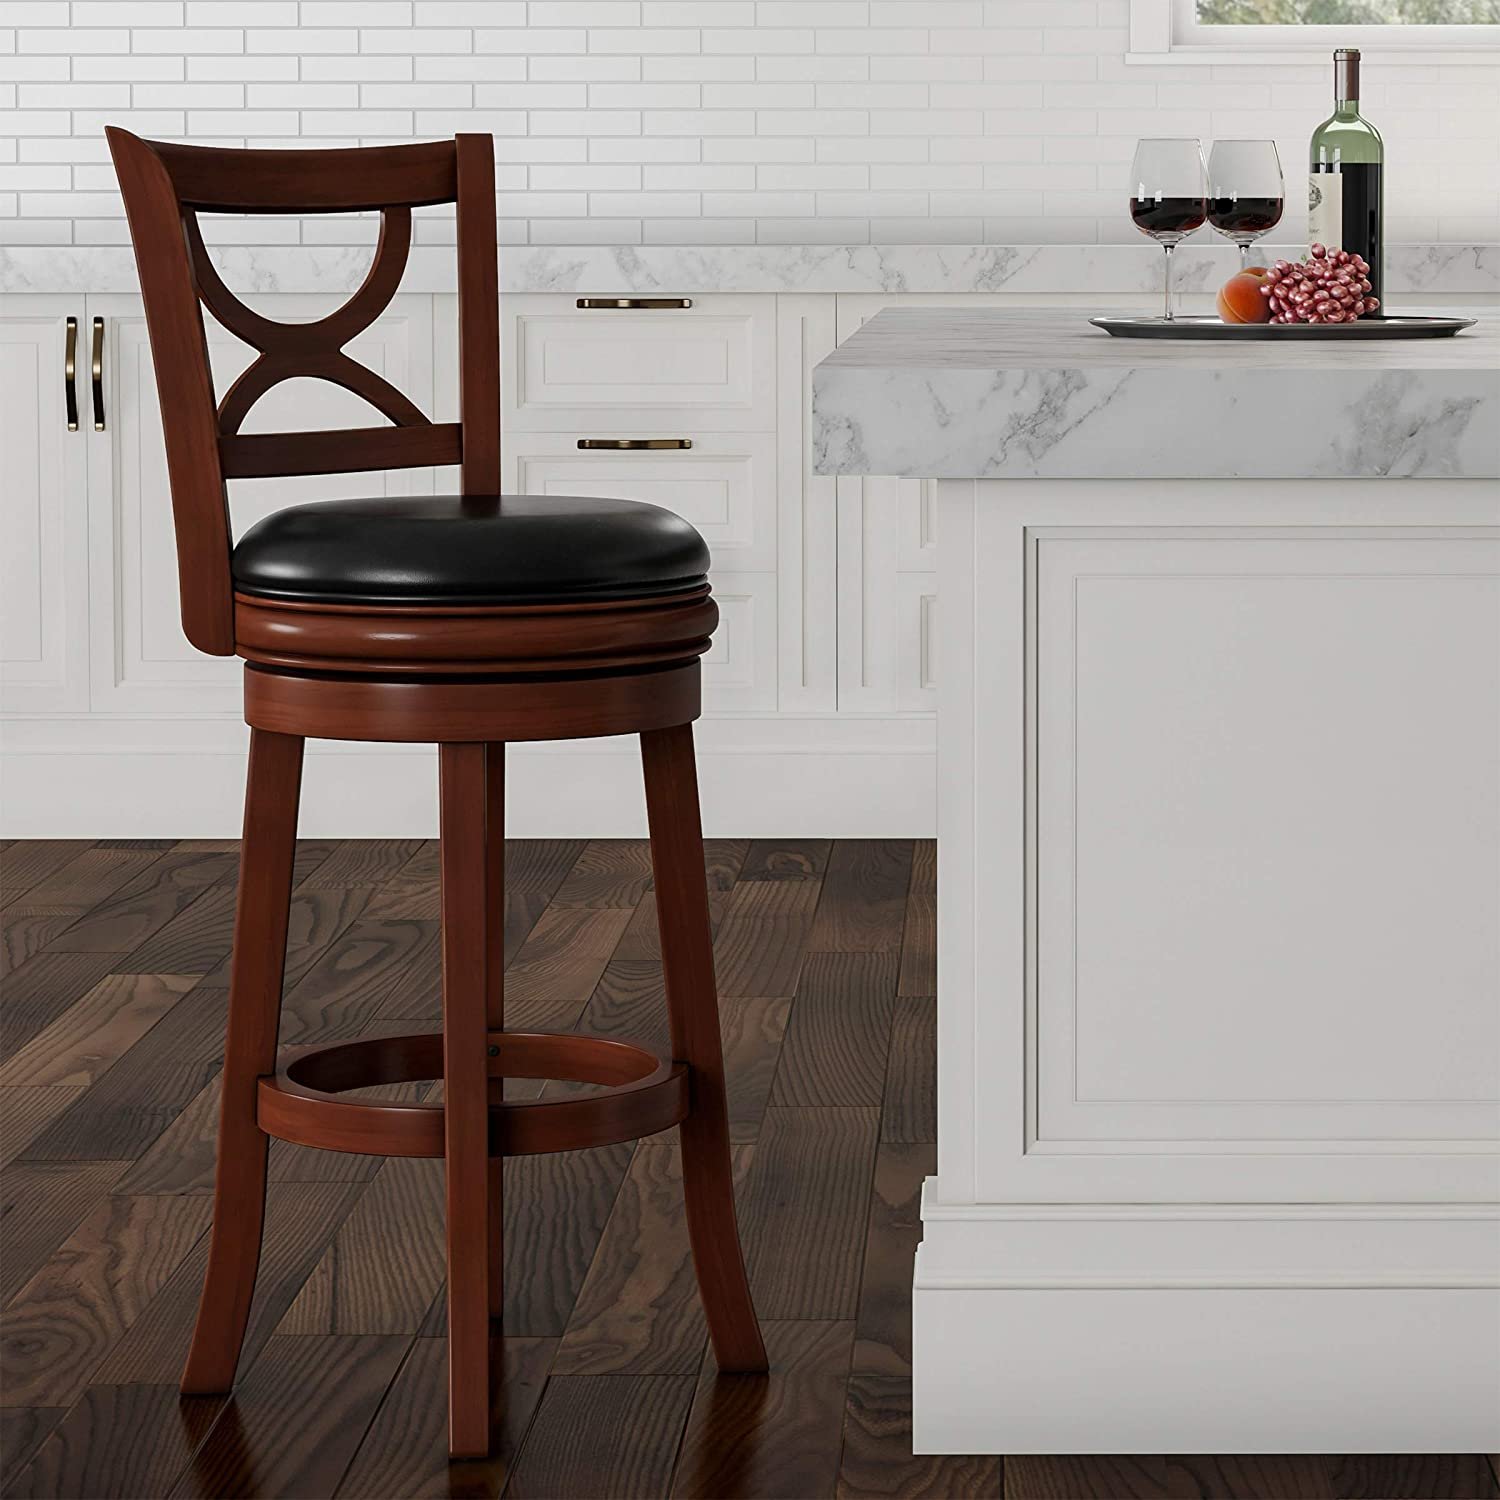 "Lavish Home (Brown Swivel High Back Stool-29"" Counter or Bar Height-360 Degree Rotating Seat, Faux Leather, Solid Dark Wood Finish & Footrest, 29"""